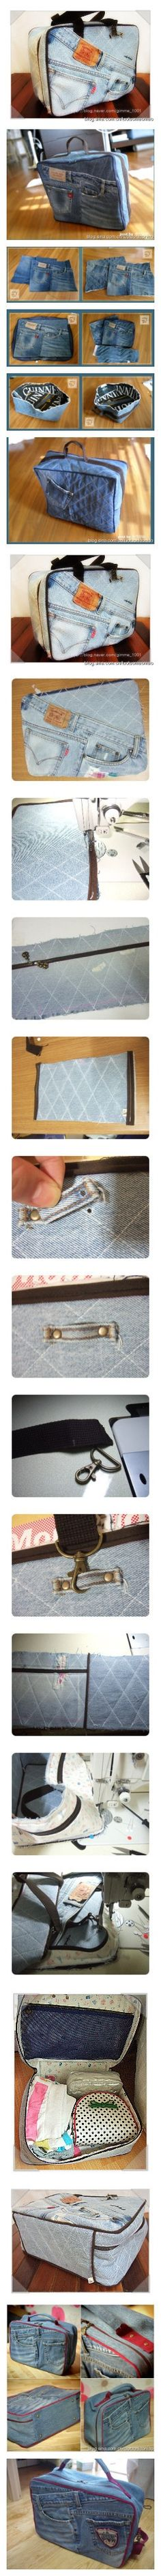 Creative Sewing idea #diy #crafts